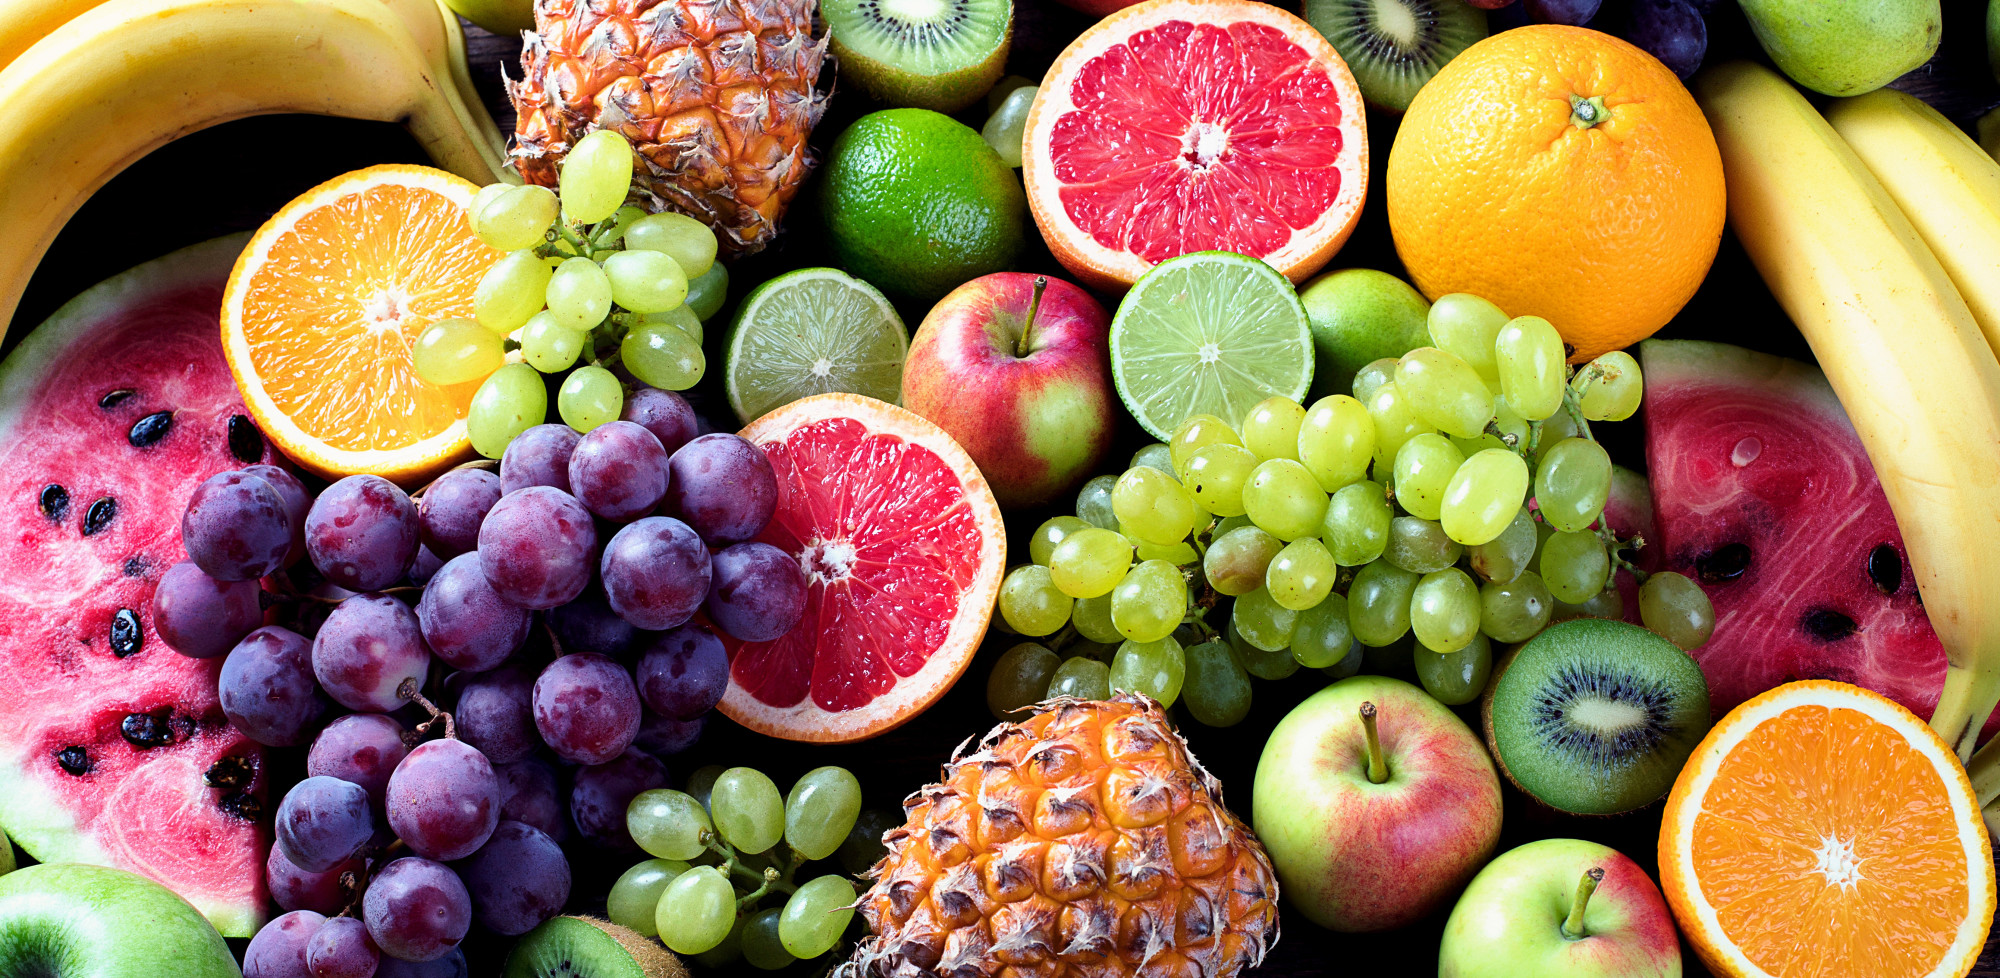 Natural Nutrition: 9 Healthy Fruits to Incorporate Into Your Diet